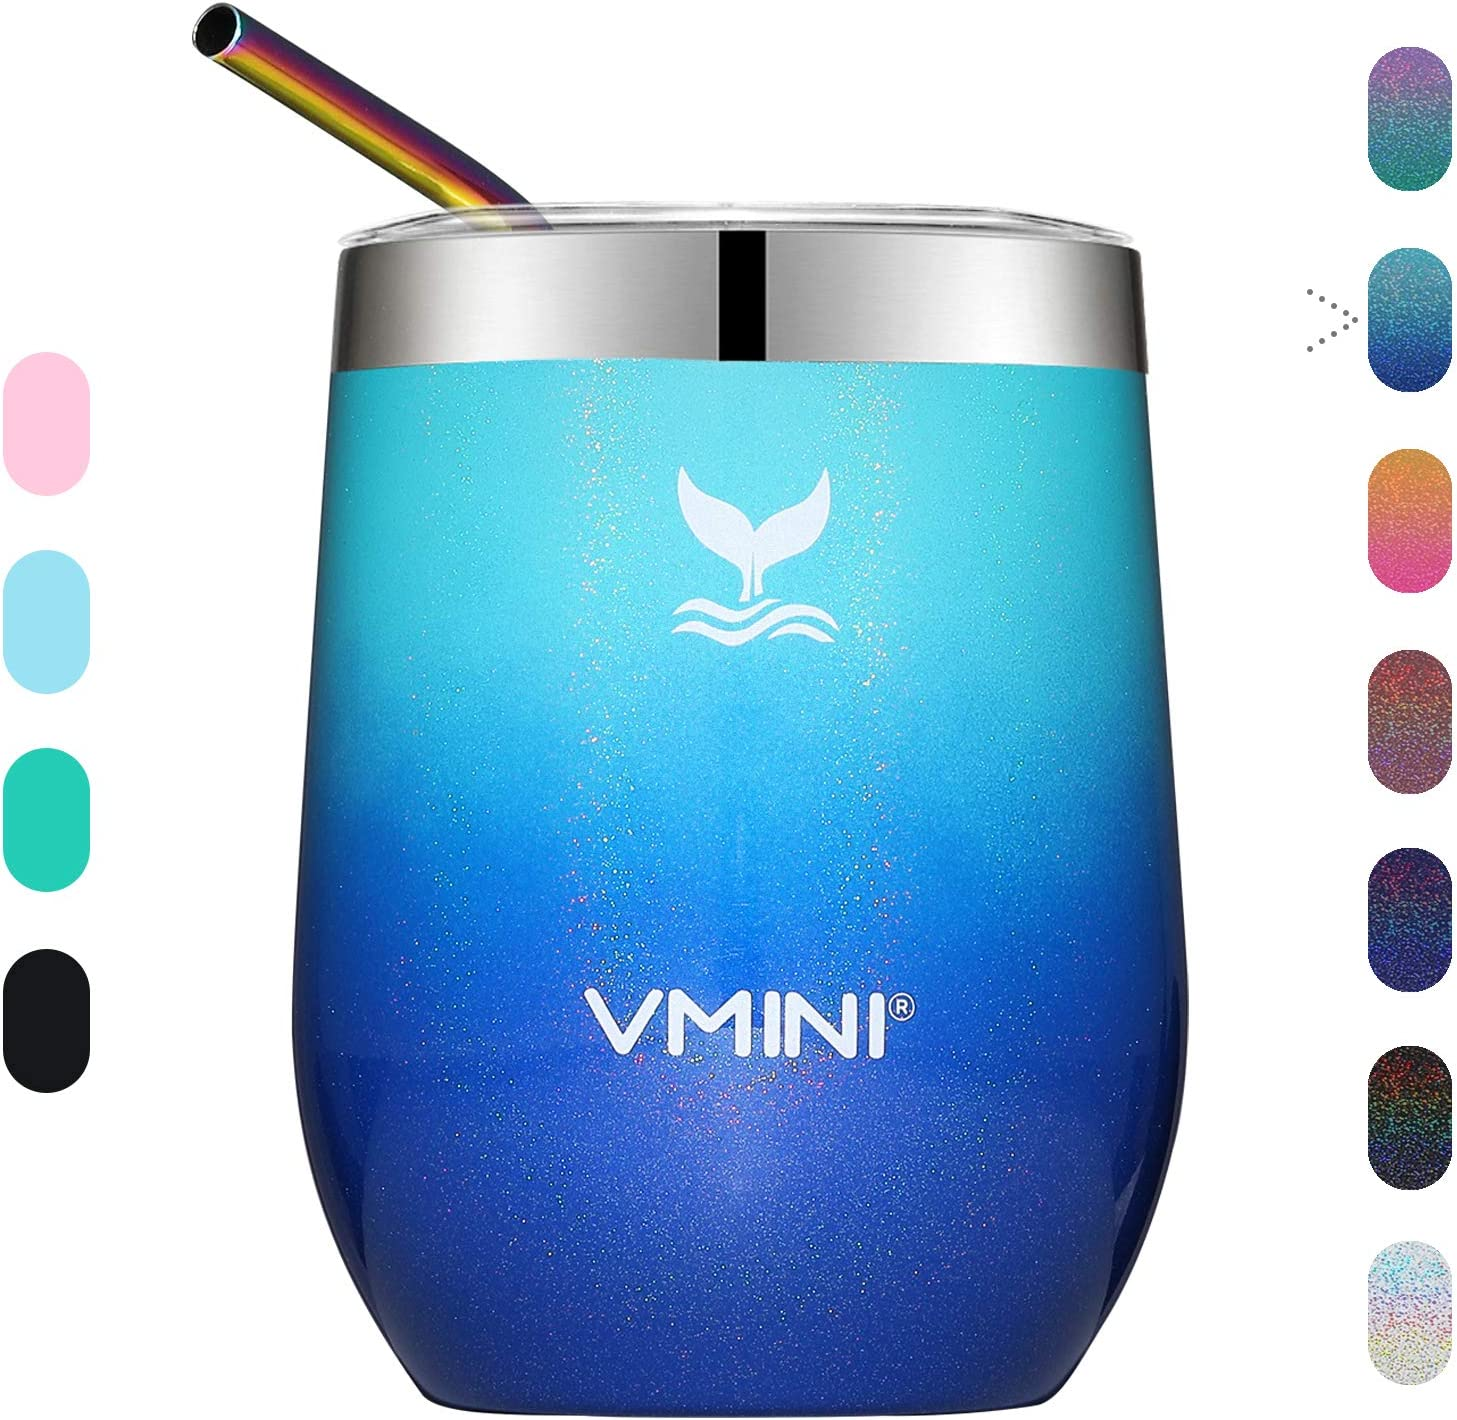 Vmini Wine Tumbler with Lid - Wine Glass, Travel Mug, Stemless Coffee Cup, Vacuum Insulated Stainless Steel, 12 oz Drinkware for Champagne/Whiskey/Cocktail/Beer (Glitter Mint+Blue)